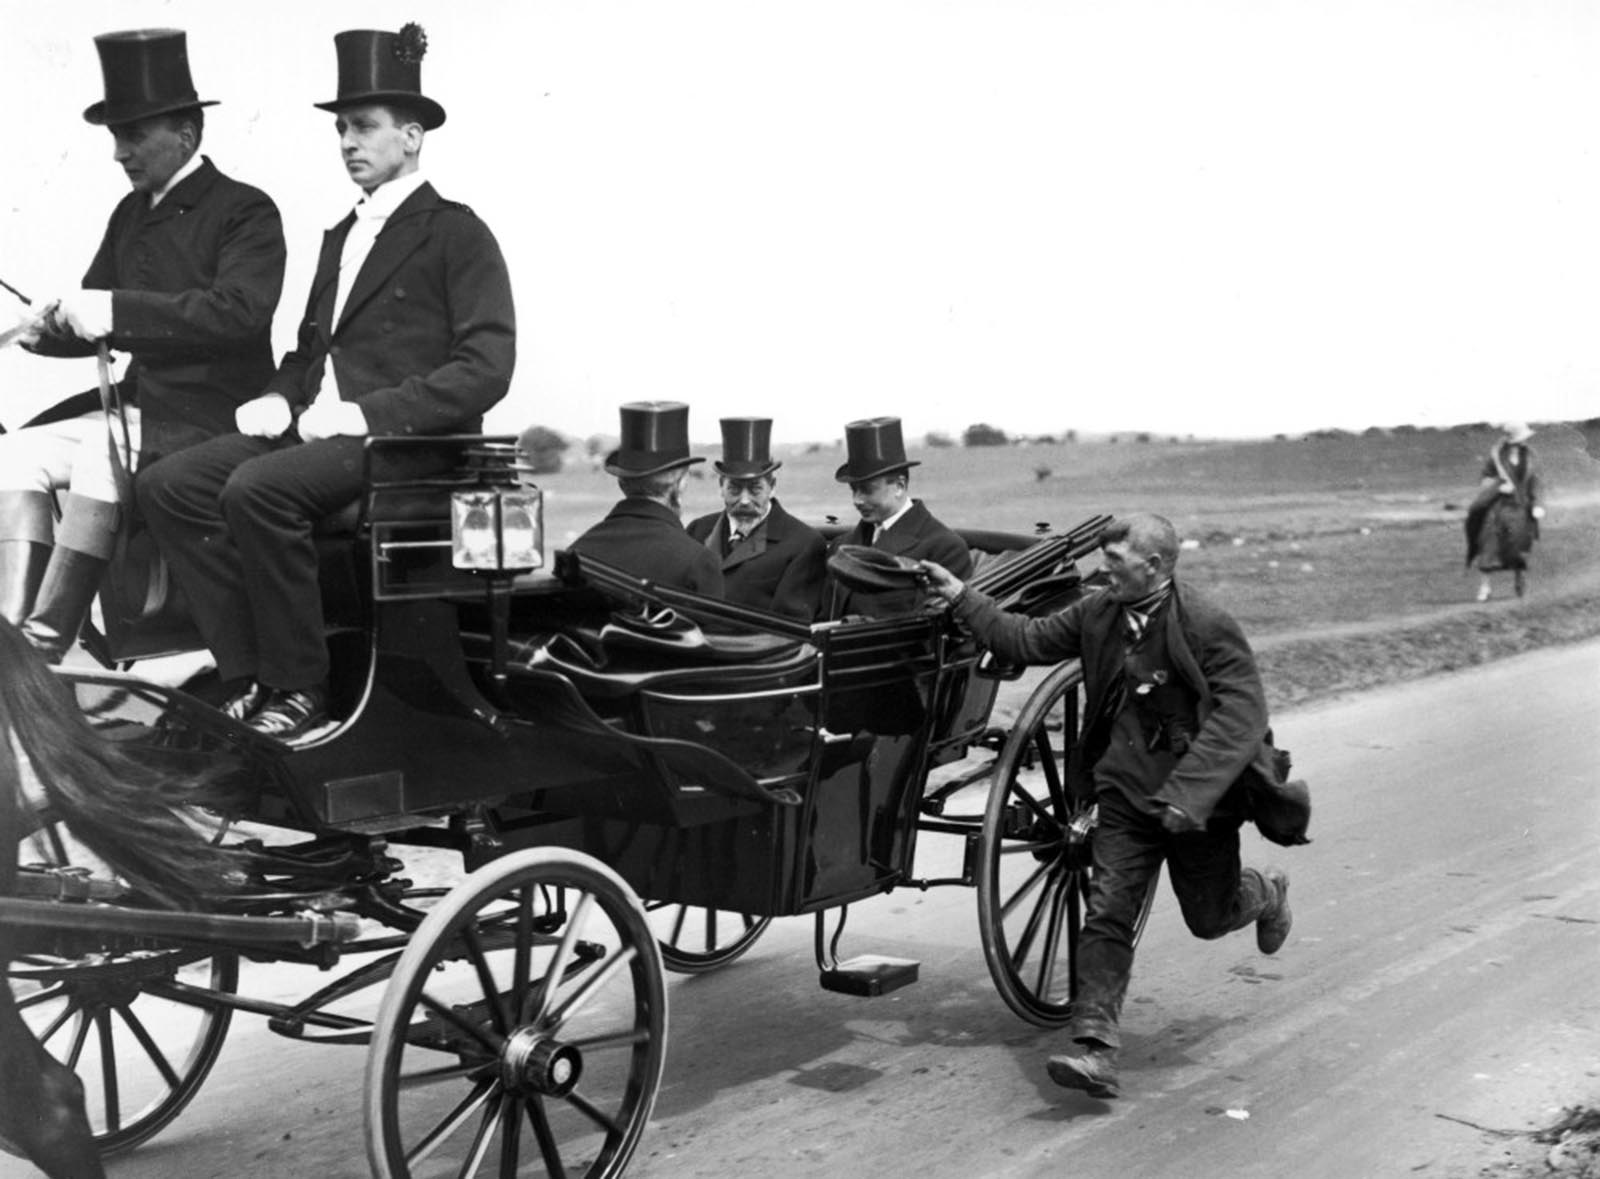 King George V. Photograph, taken in the early 1920's showing a beggar solicing money form the royal party as he runs alongside their carriage. The occupants look embarrassed.